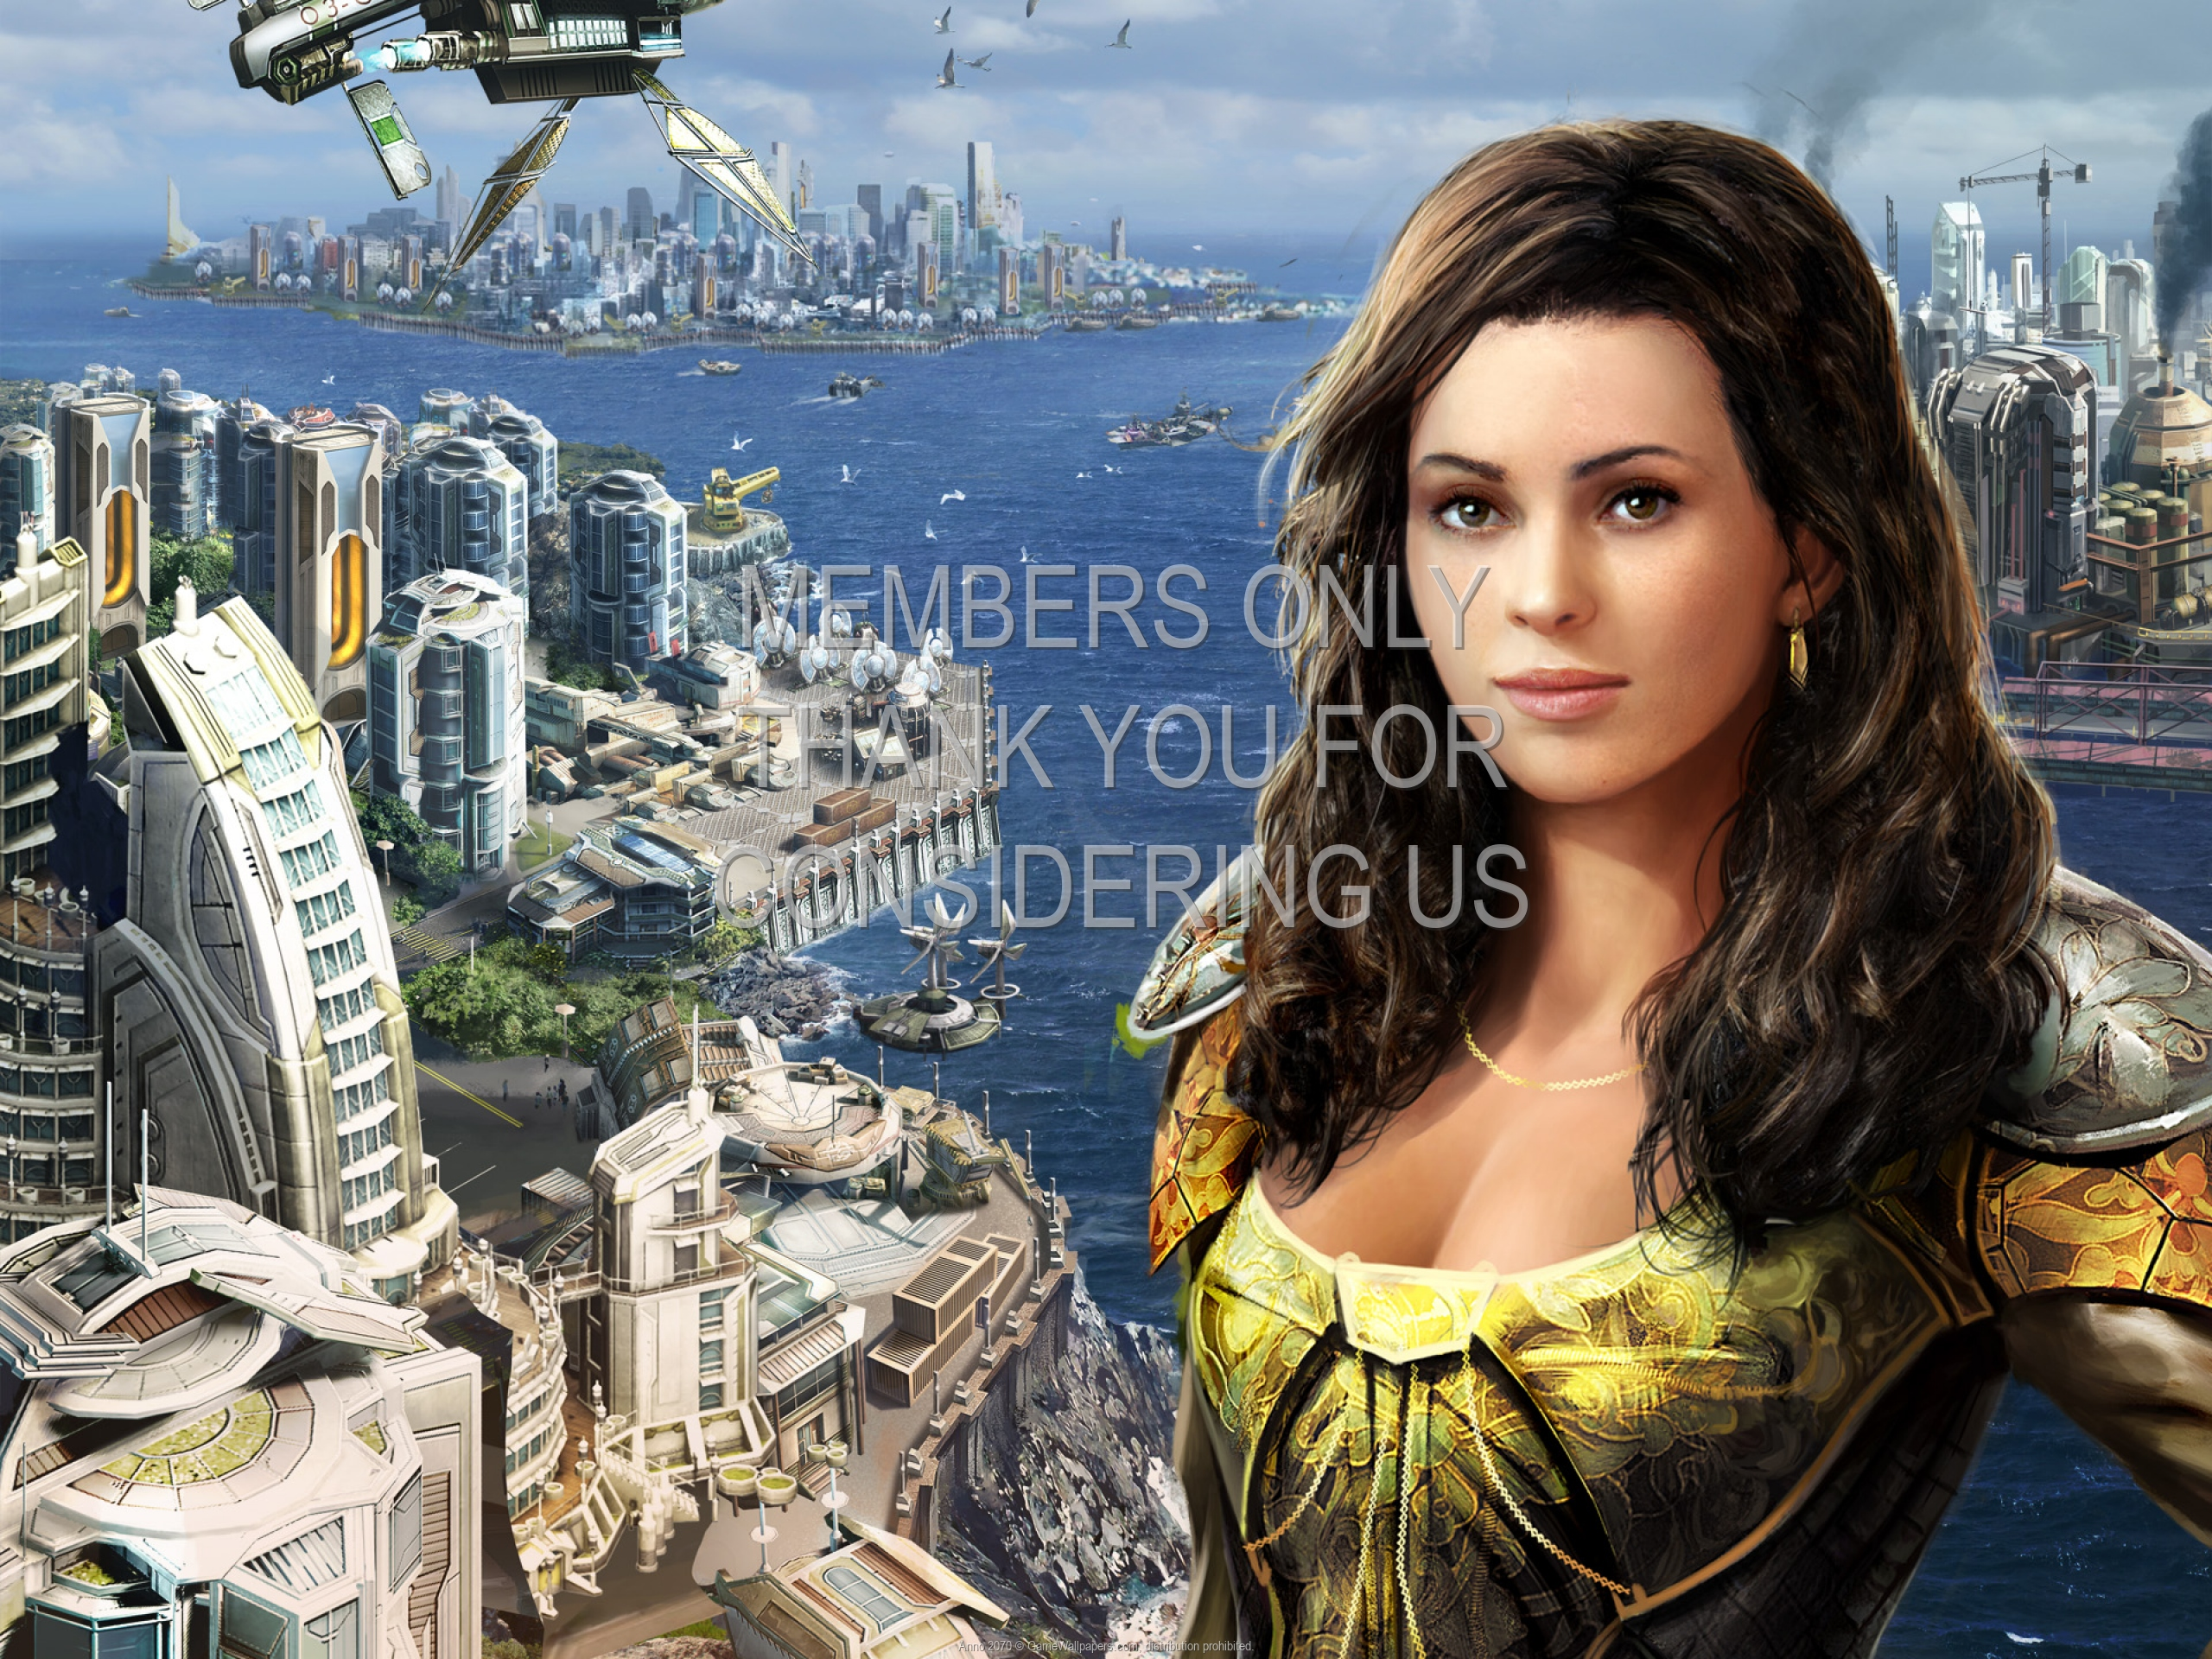 Anno 2070 1920x1080 Mobile wallpaper or background 01